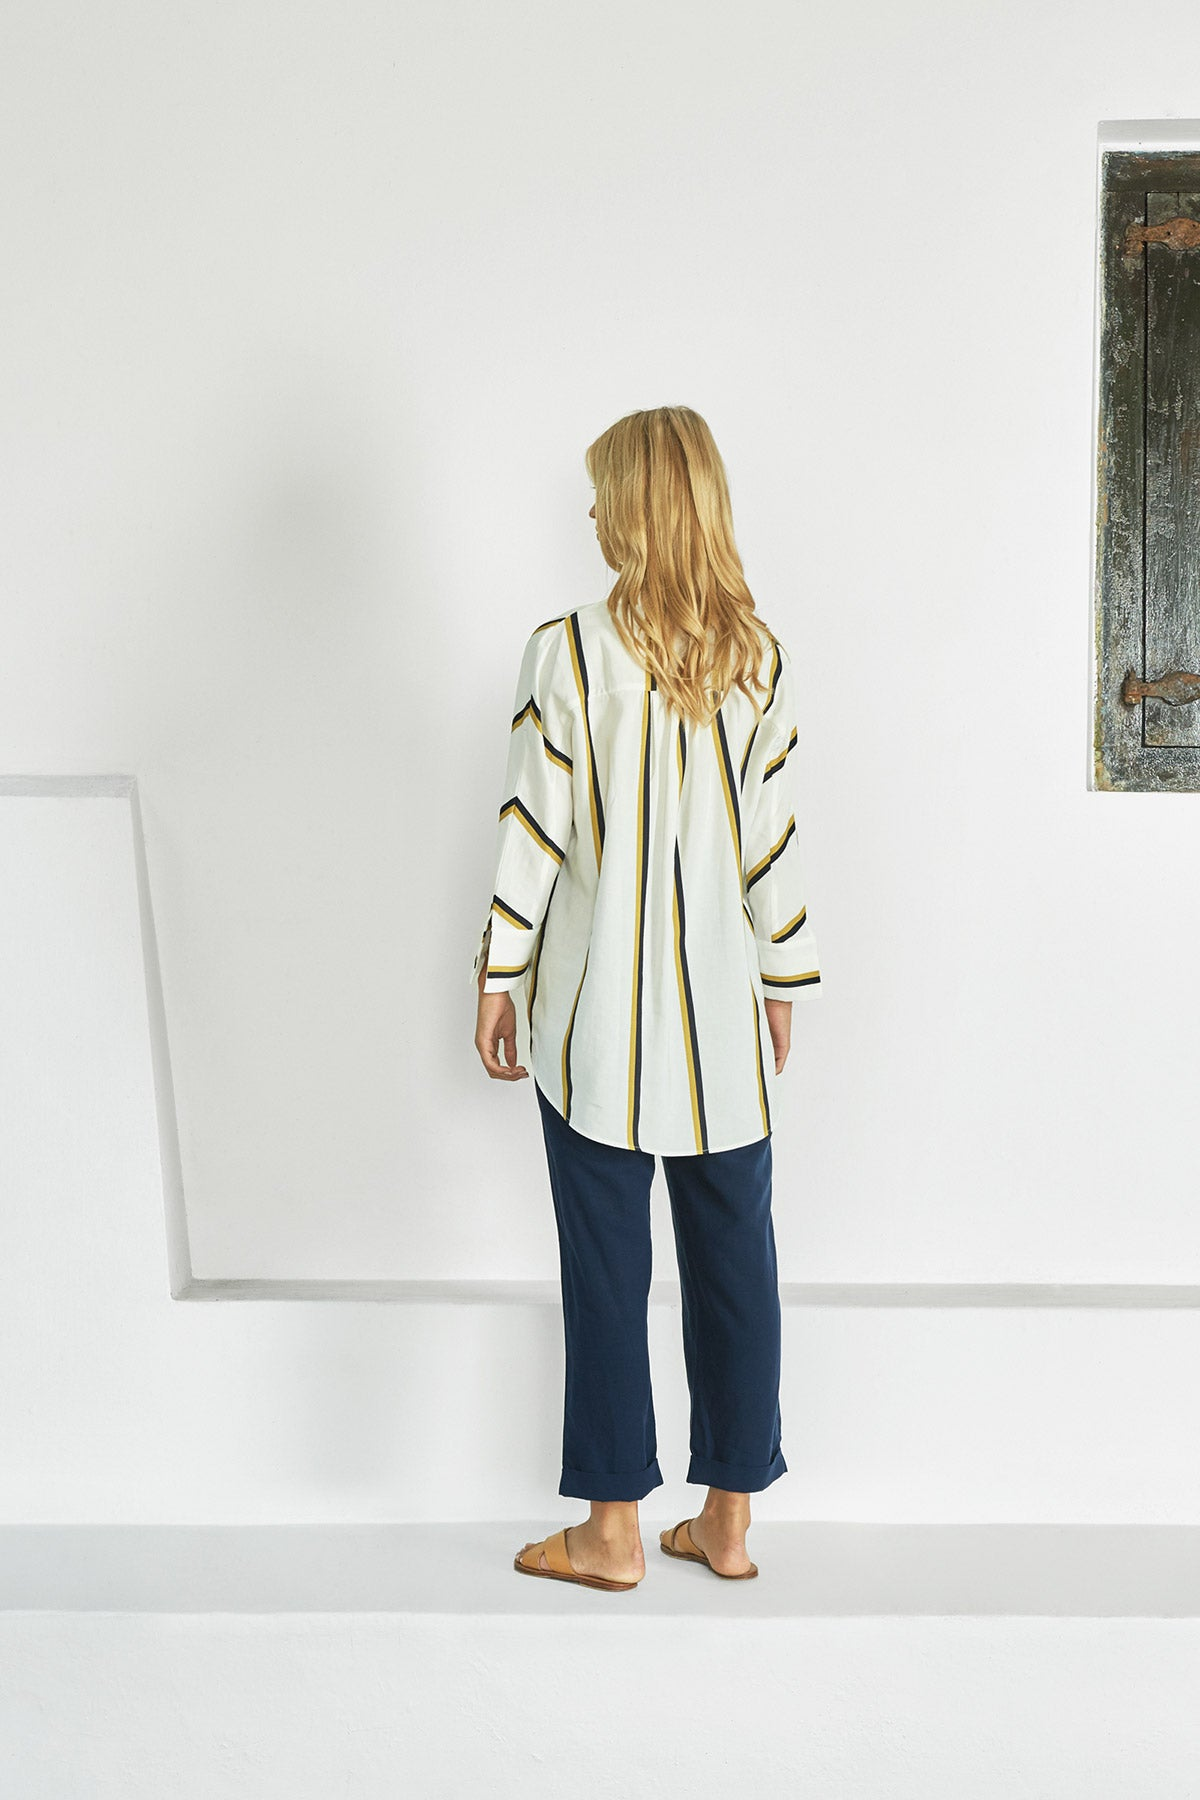 THE ESTELLE PAINTERS SHIRT